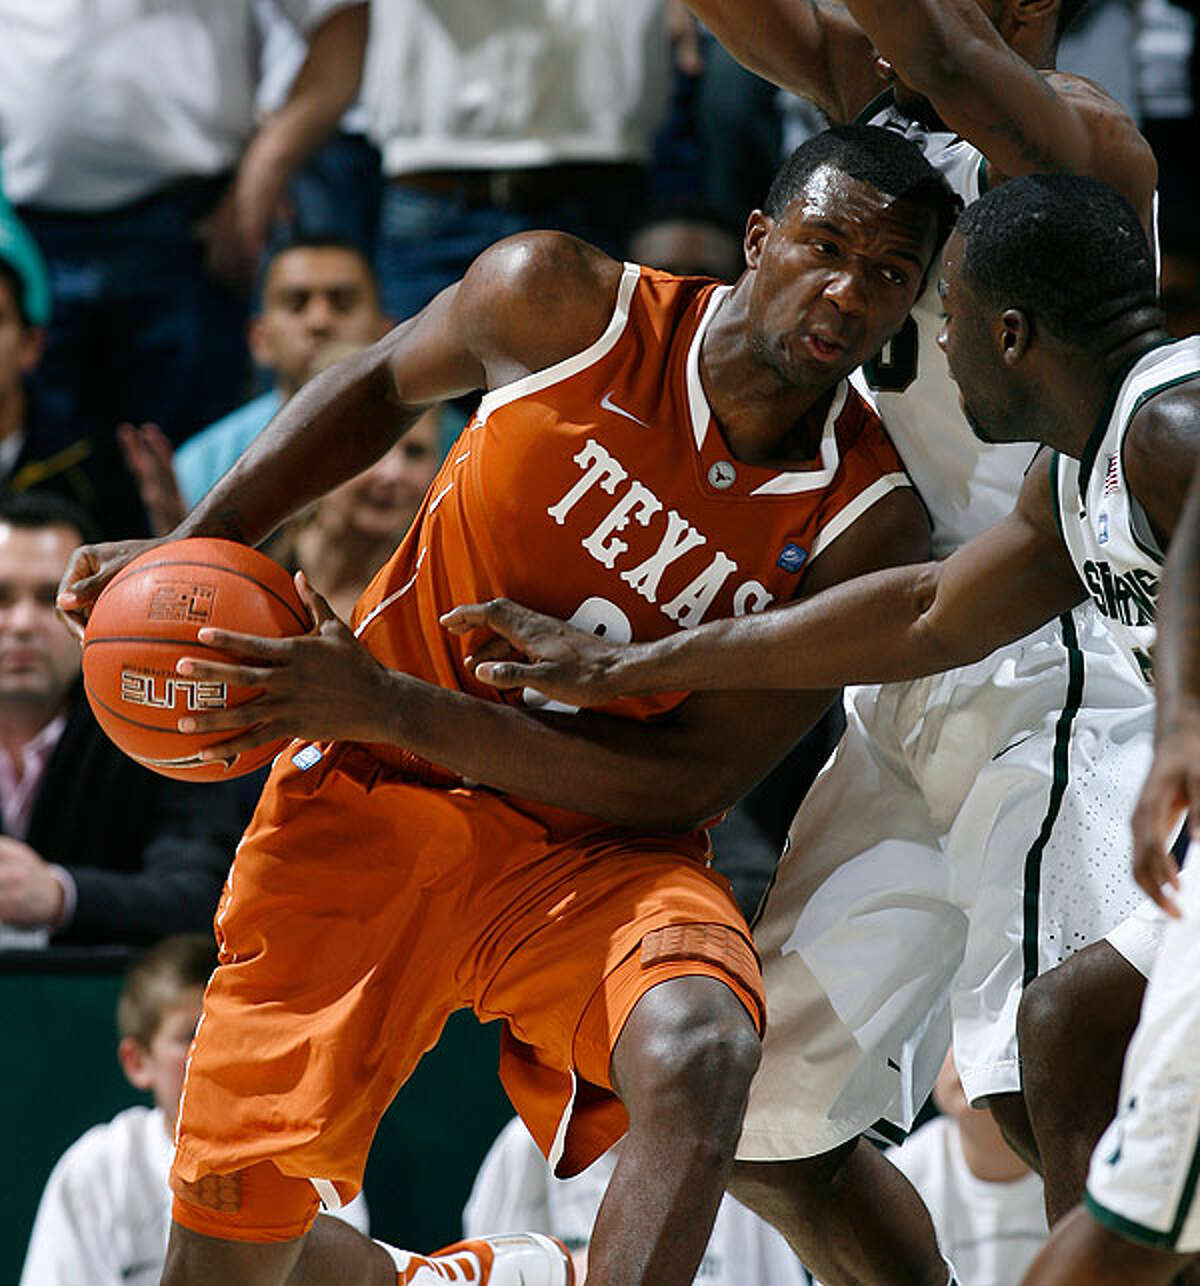 Texas' Jordan Hamilton (left) drives against Michigan State's Draymond Green on Wednesday in East Lansing, Mich. Hamilton led Texas with 21 points in a 67-55 win.